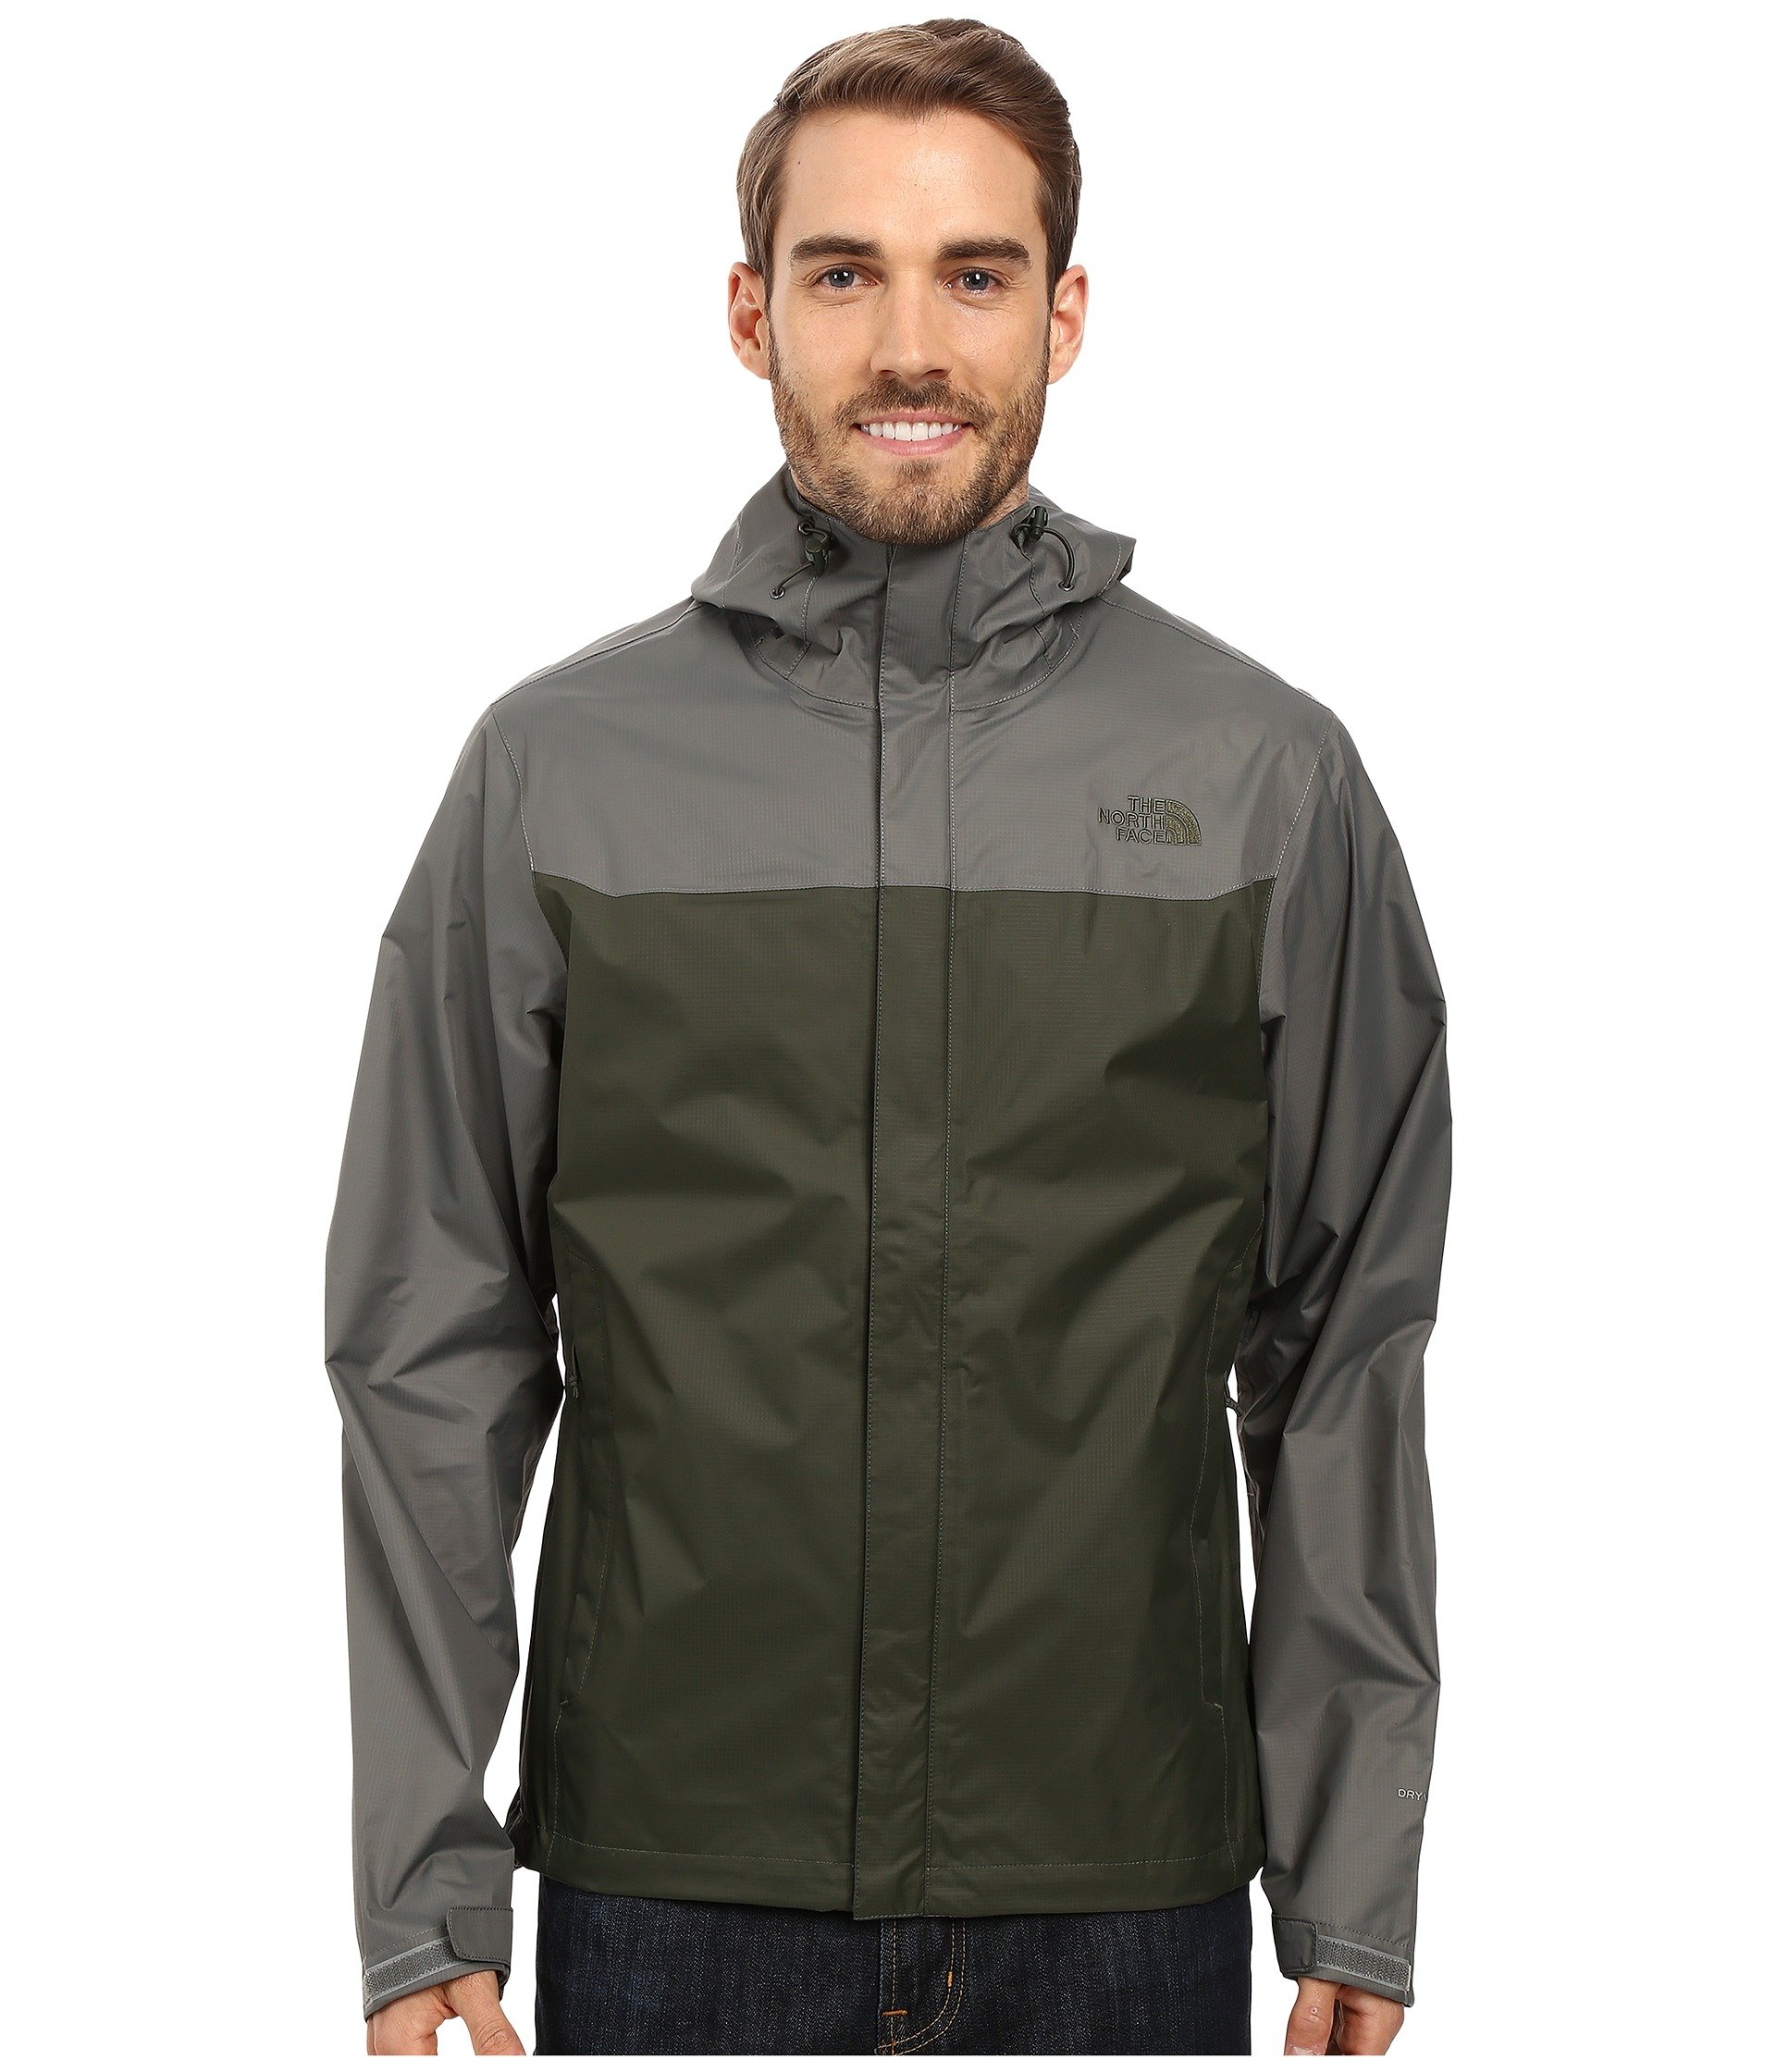 Galleon The North Face Venture Jacket Mens Climbing Ivy Green Fuse Box Fusebox Grey Small